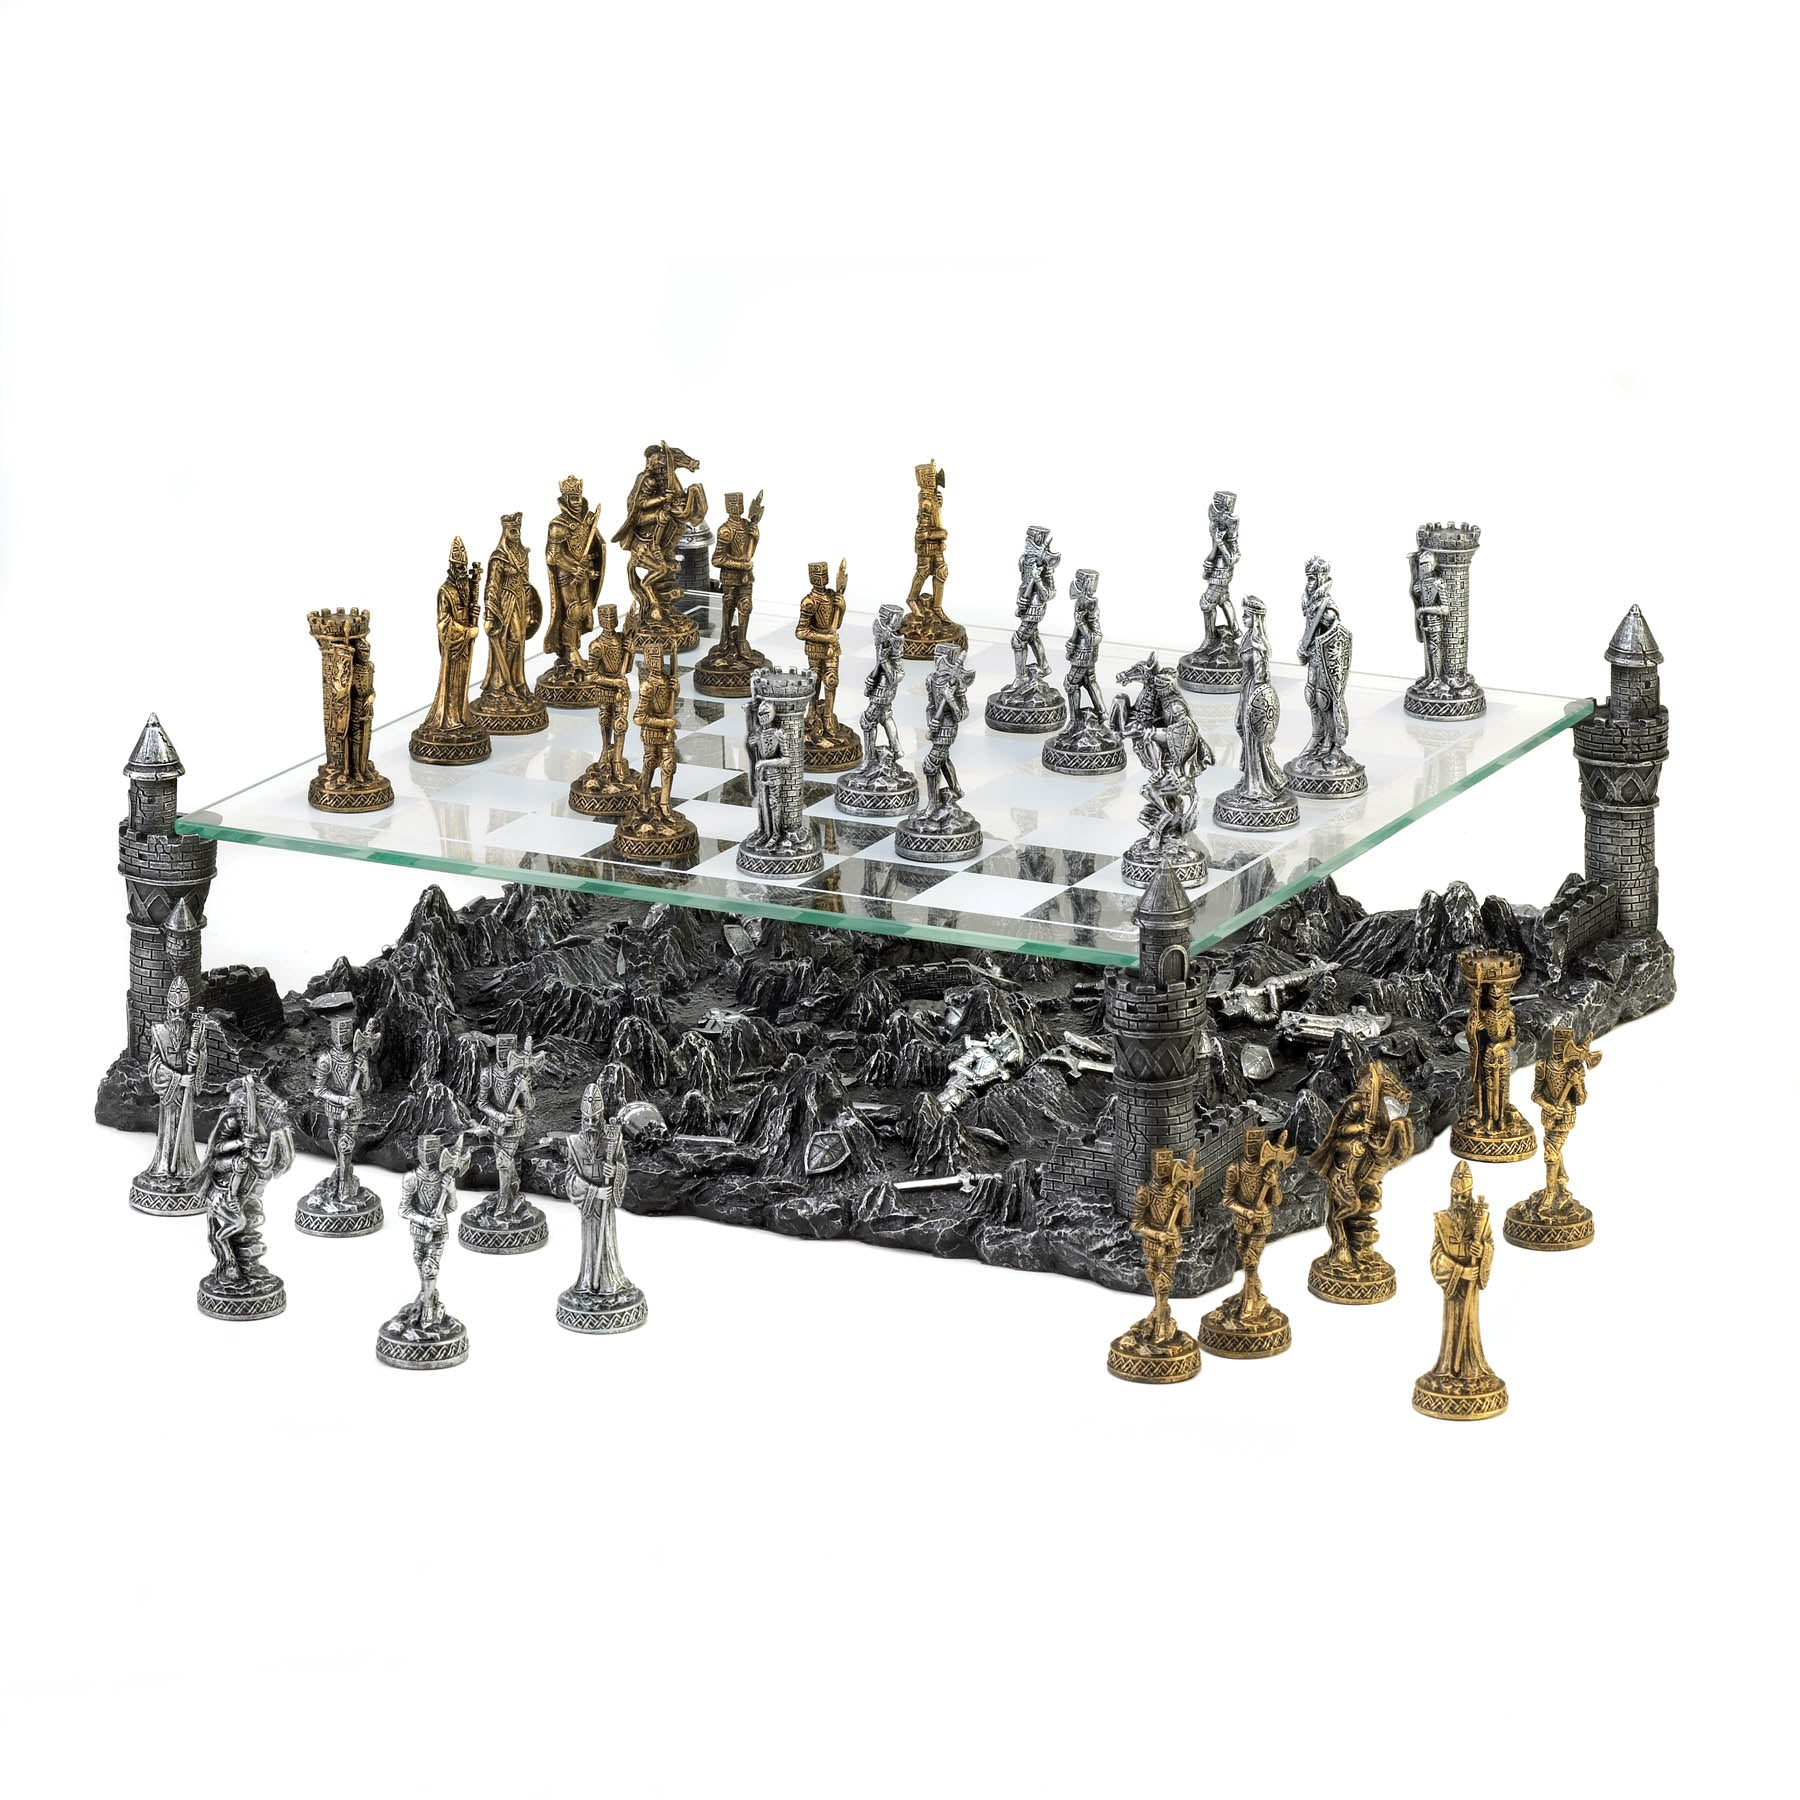 Koolekoo Battleground Chess Set - 15189